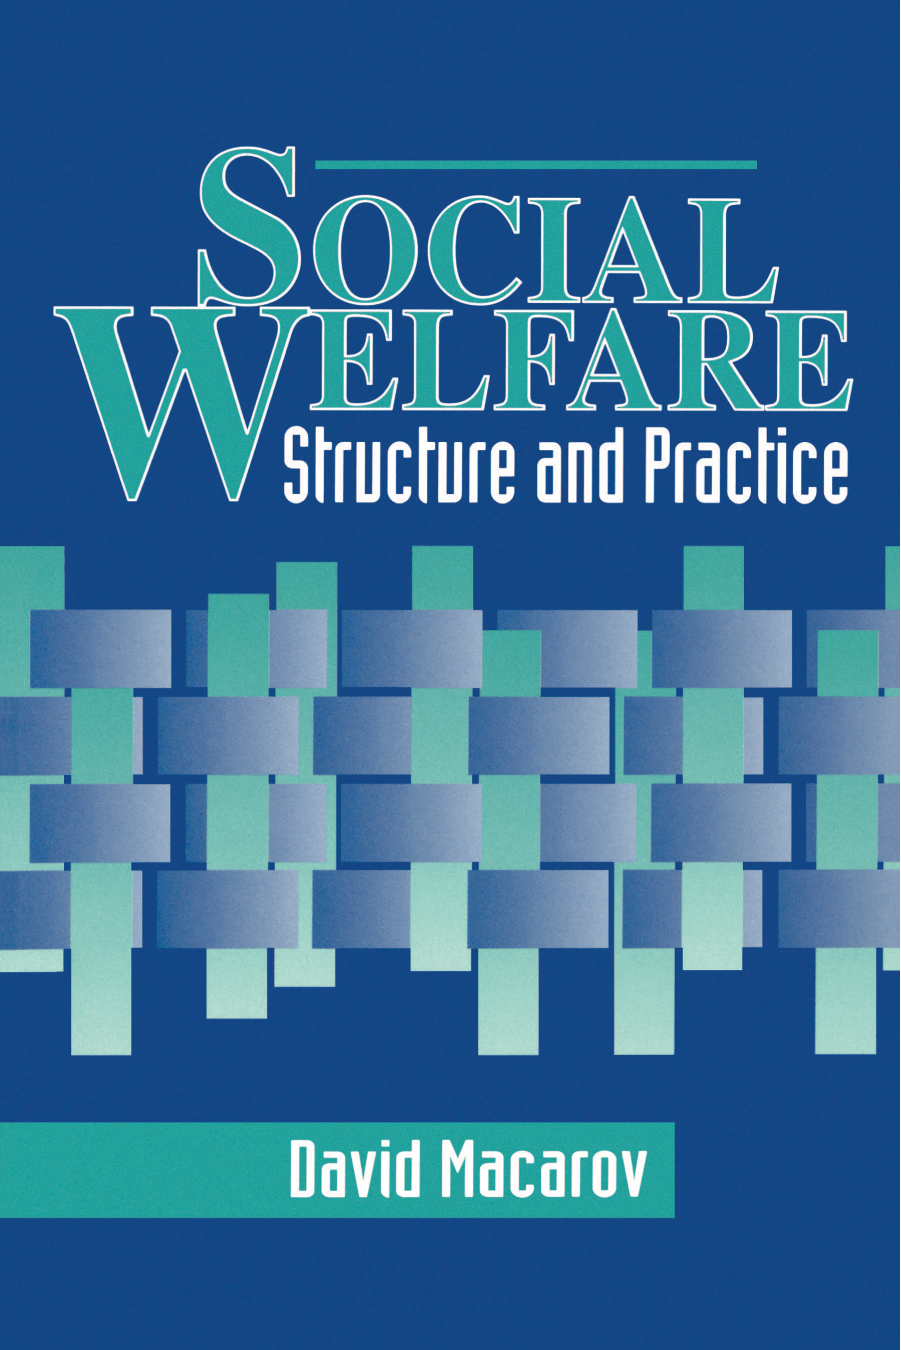 social issues in f b Social problems exam practice study play most legislative reform emerges a quickly, in response to one or two high-profile situations b quickly, after advocates.